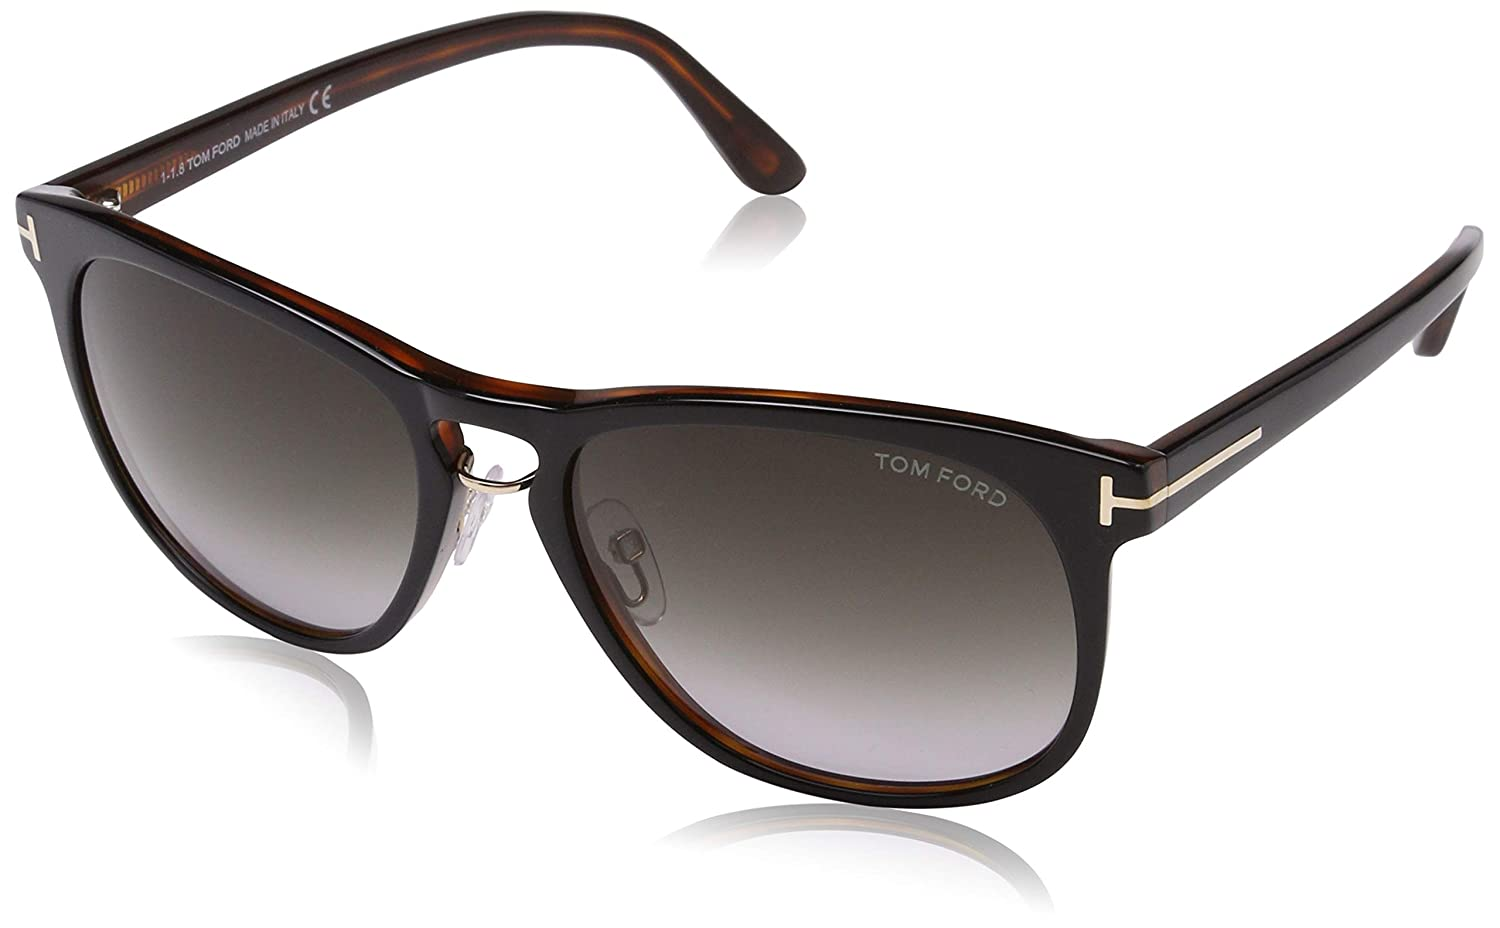 0f211fef5b2 Amazon.com  Tom Ford 346 01V Black Tortoise Franklin Square Sunglasses Lens  Category 2 Le  Tom Ford  Clothing